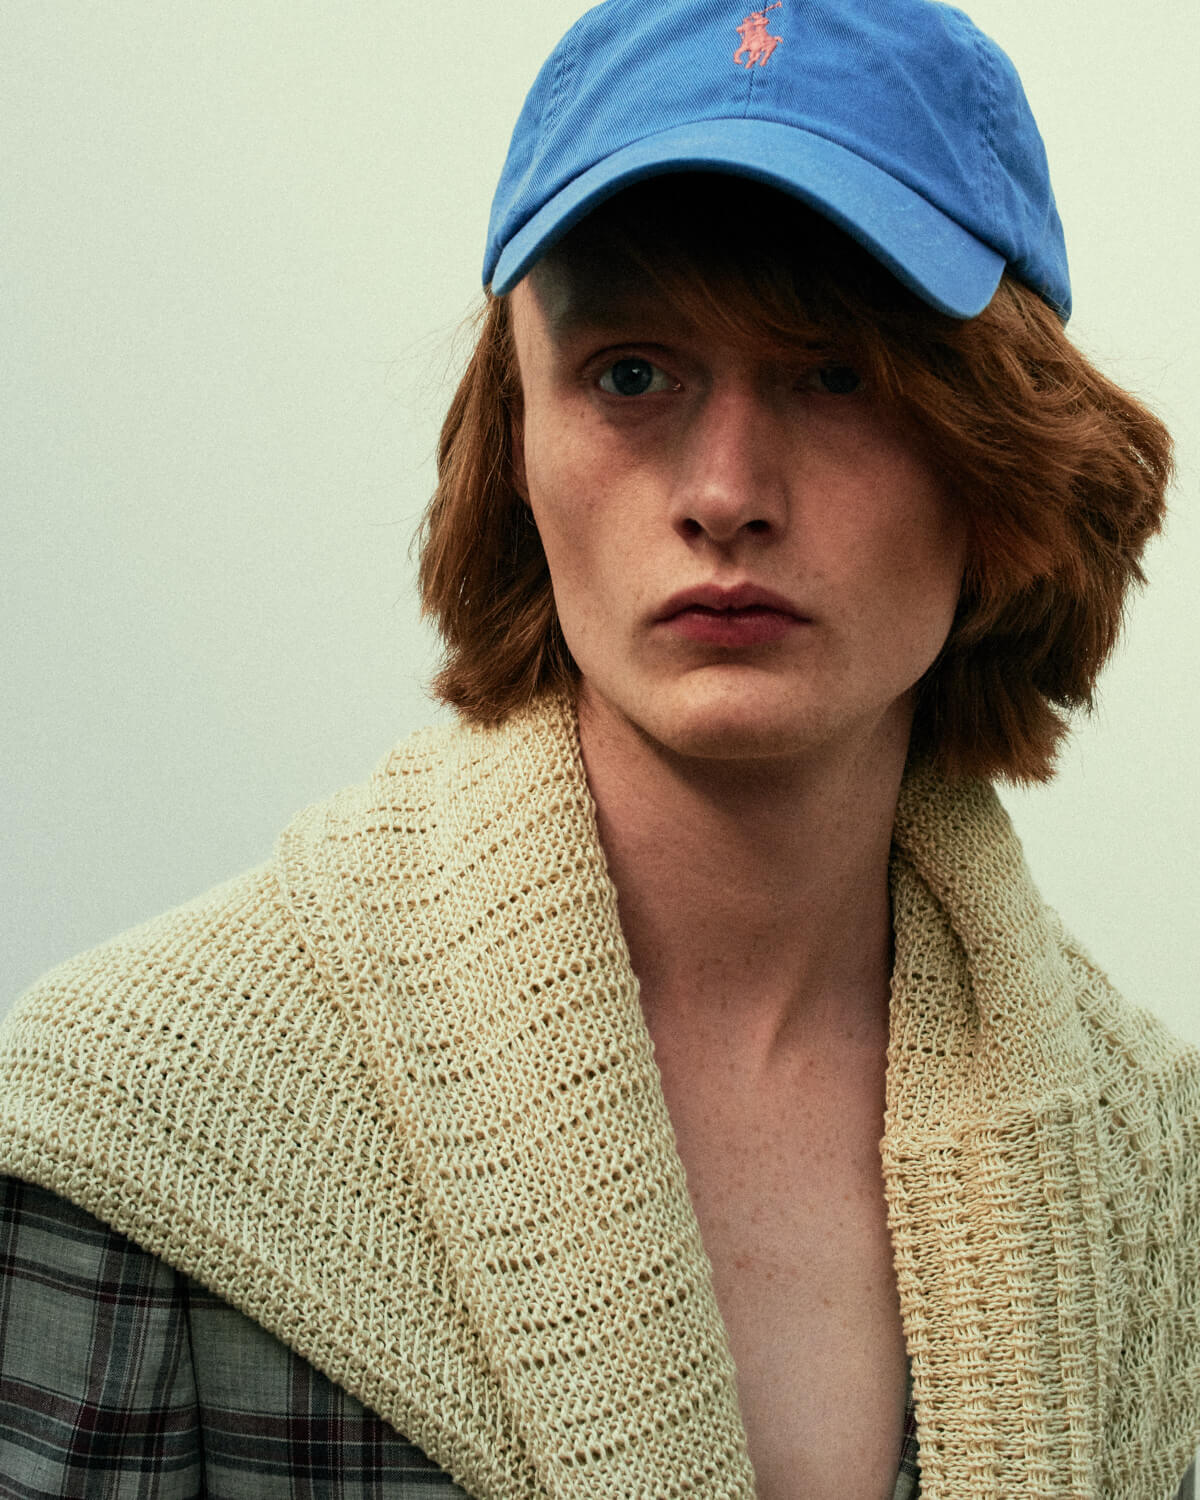 Lad,  beige jumper, blue cap by lifestyle photographer Tim Cole